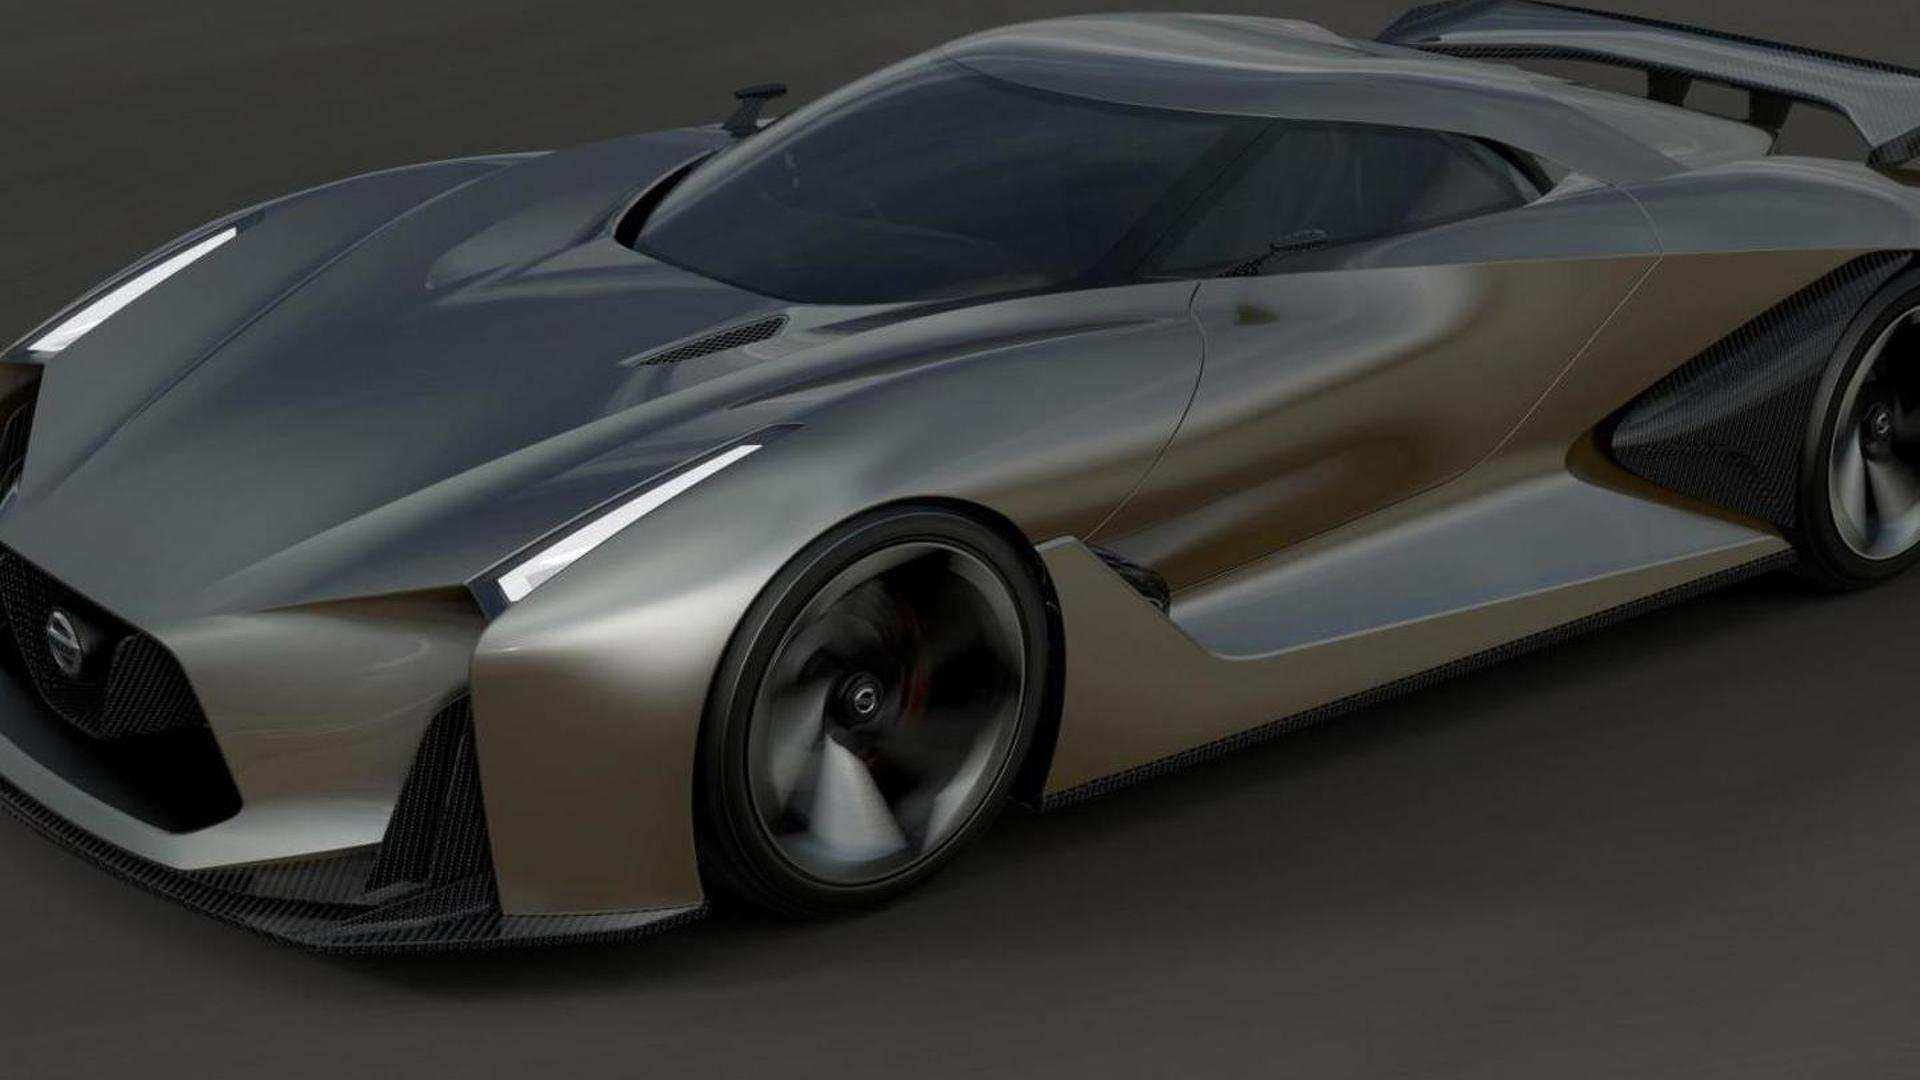 76 A 2020 Concept Nissan Gtr Price Design And Review